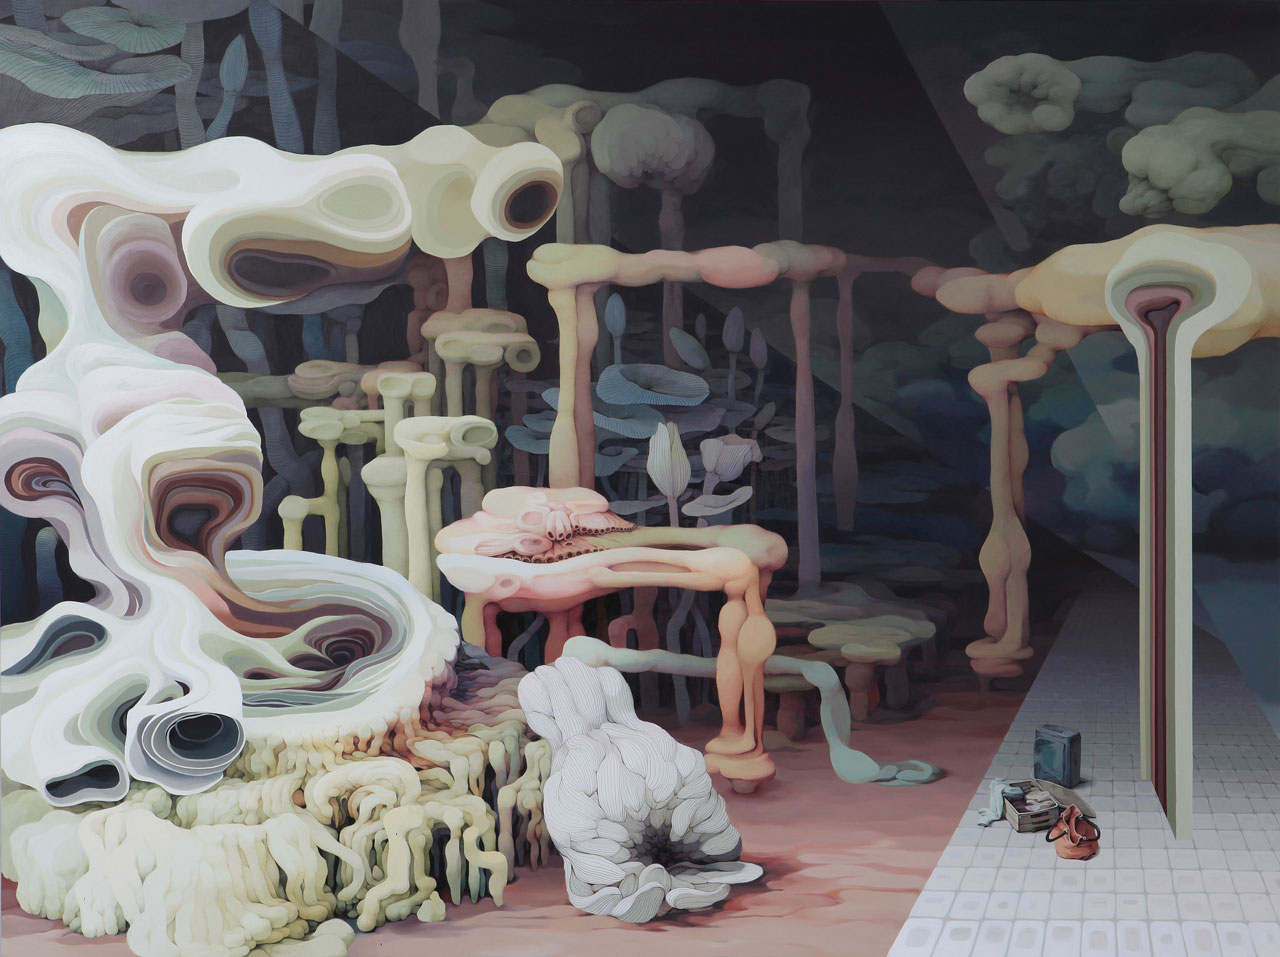 The Bizarre and Fleshy Dreamscapes of Jung-Yeon Min